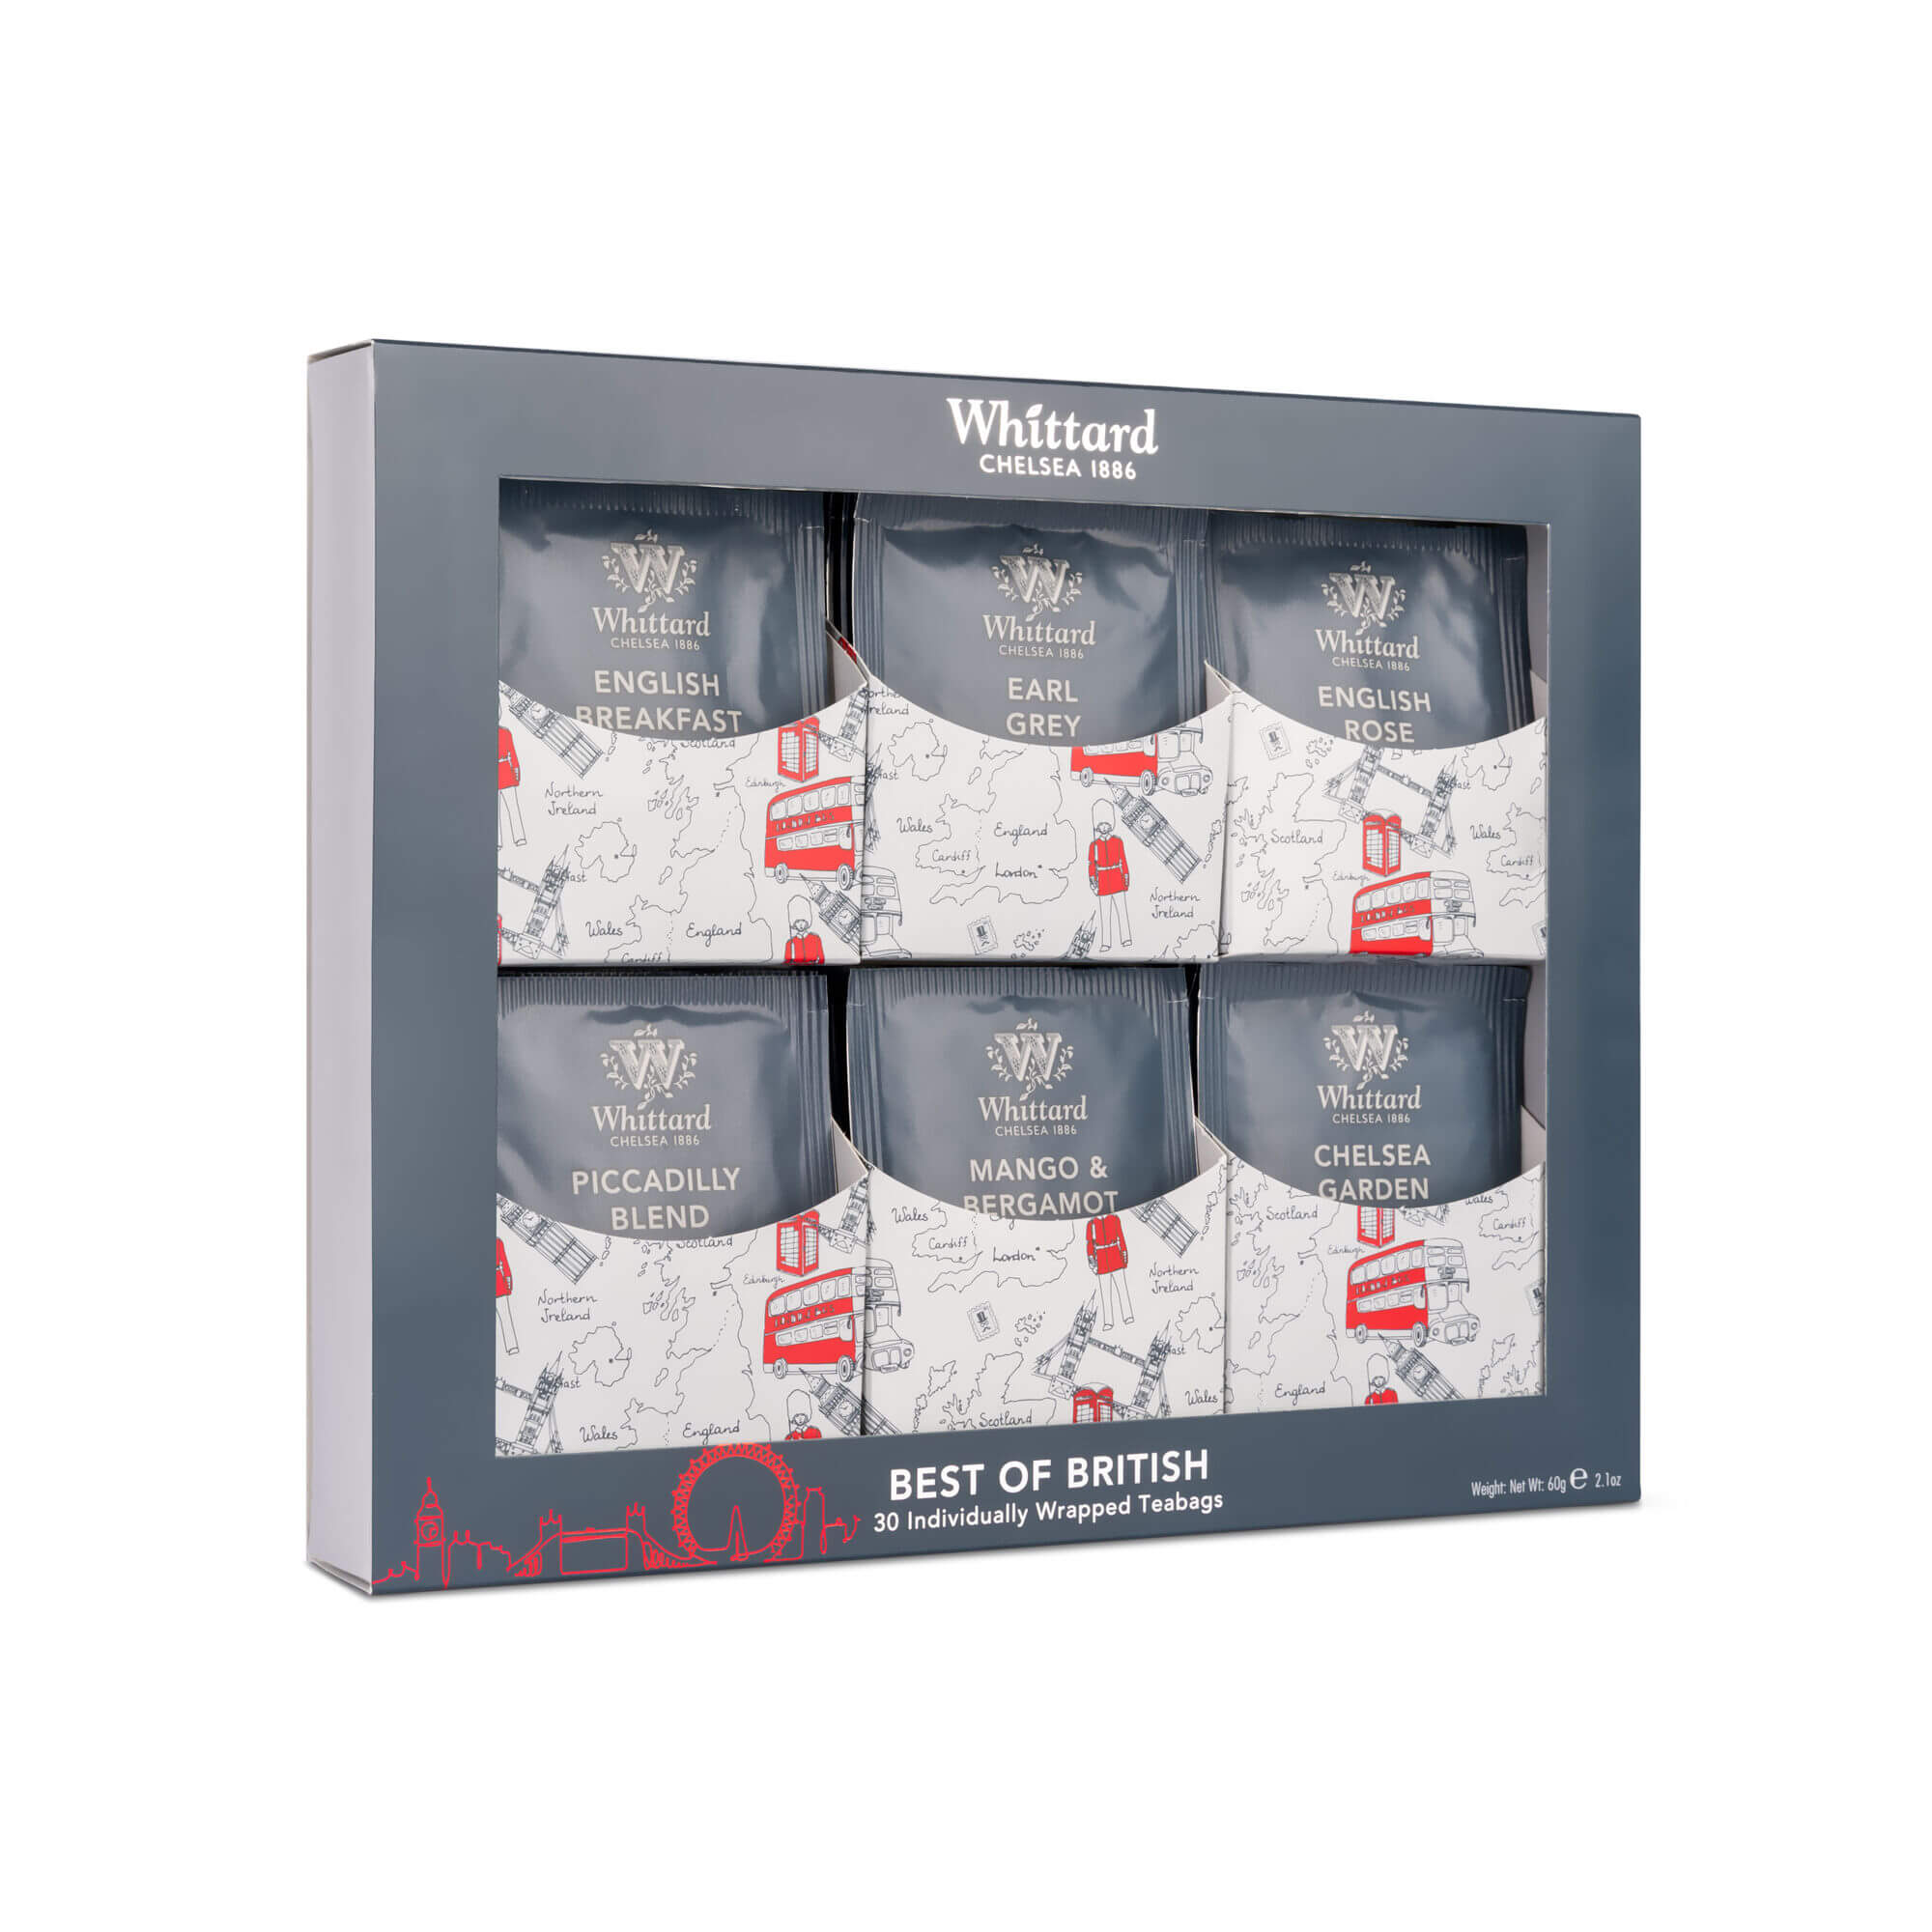 Best of British Tea gift set gift from London